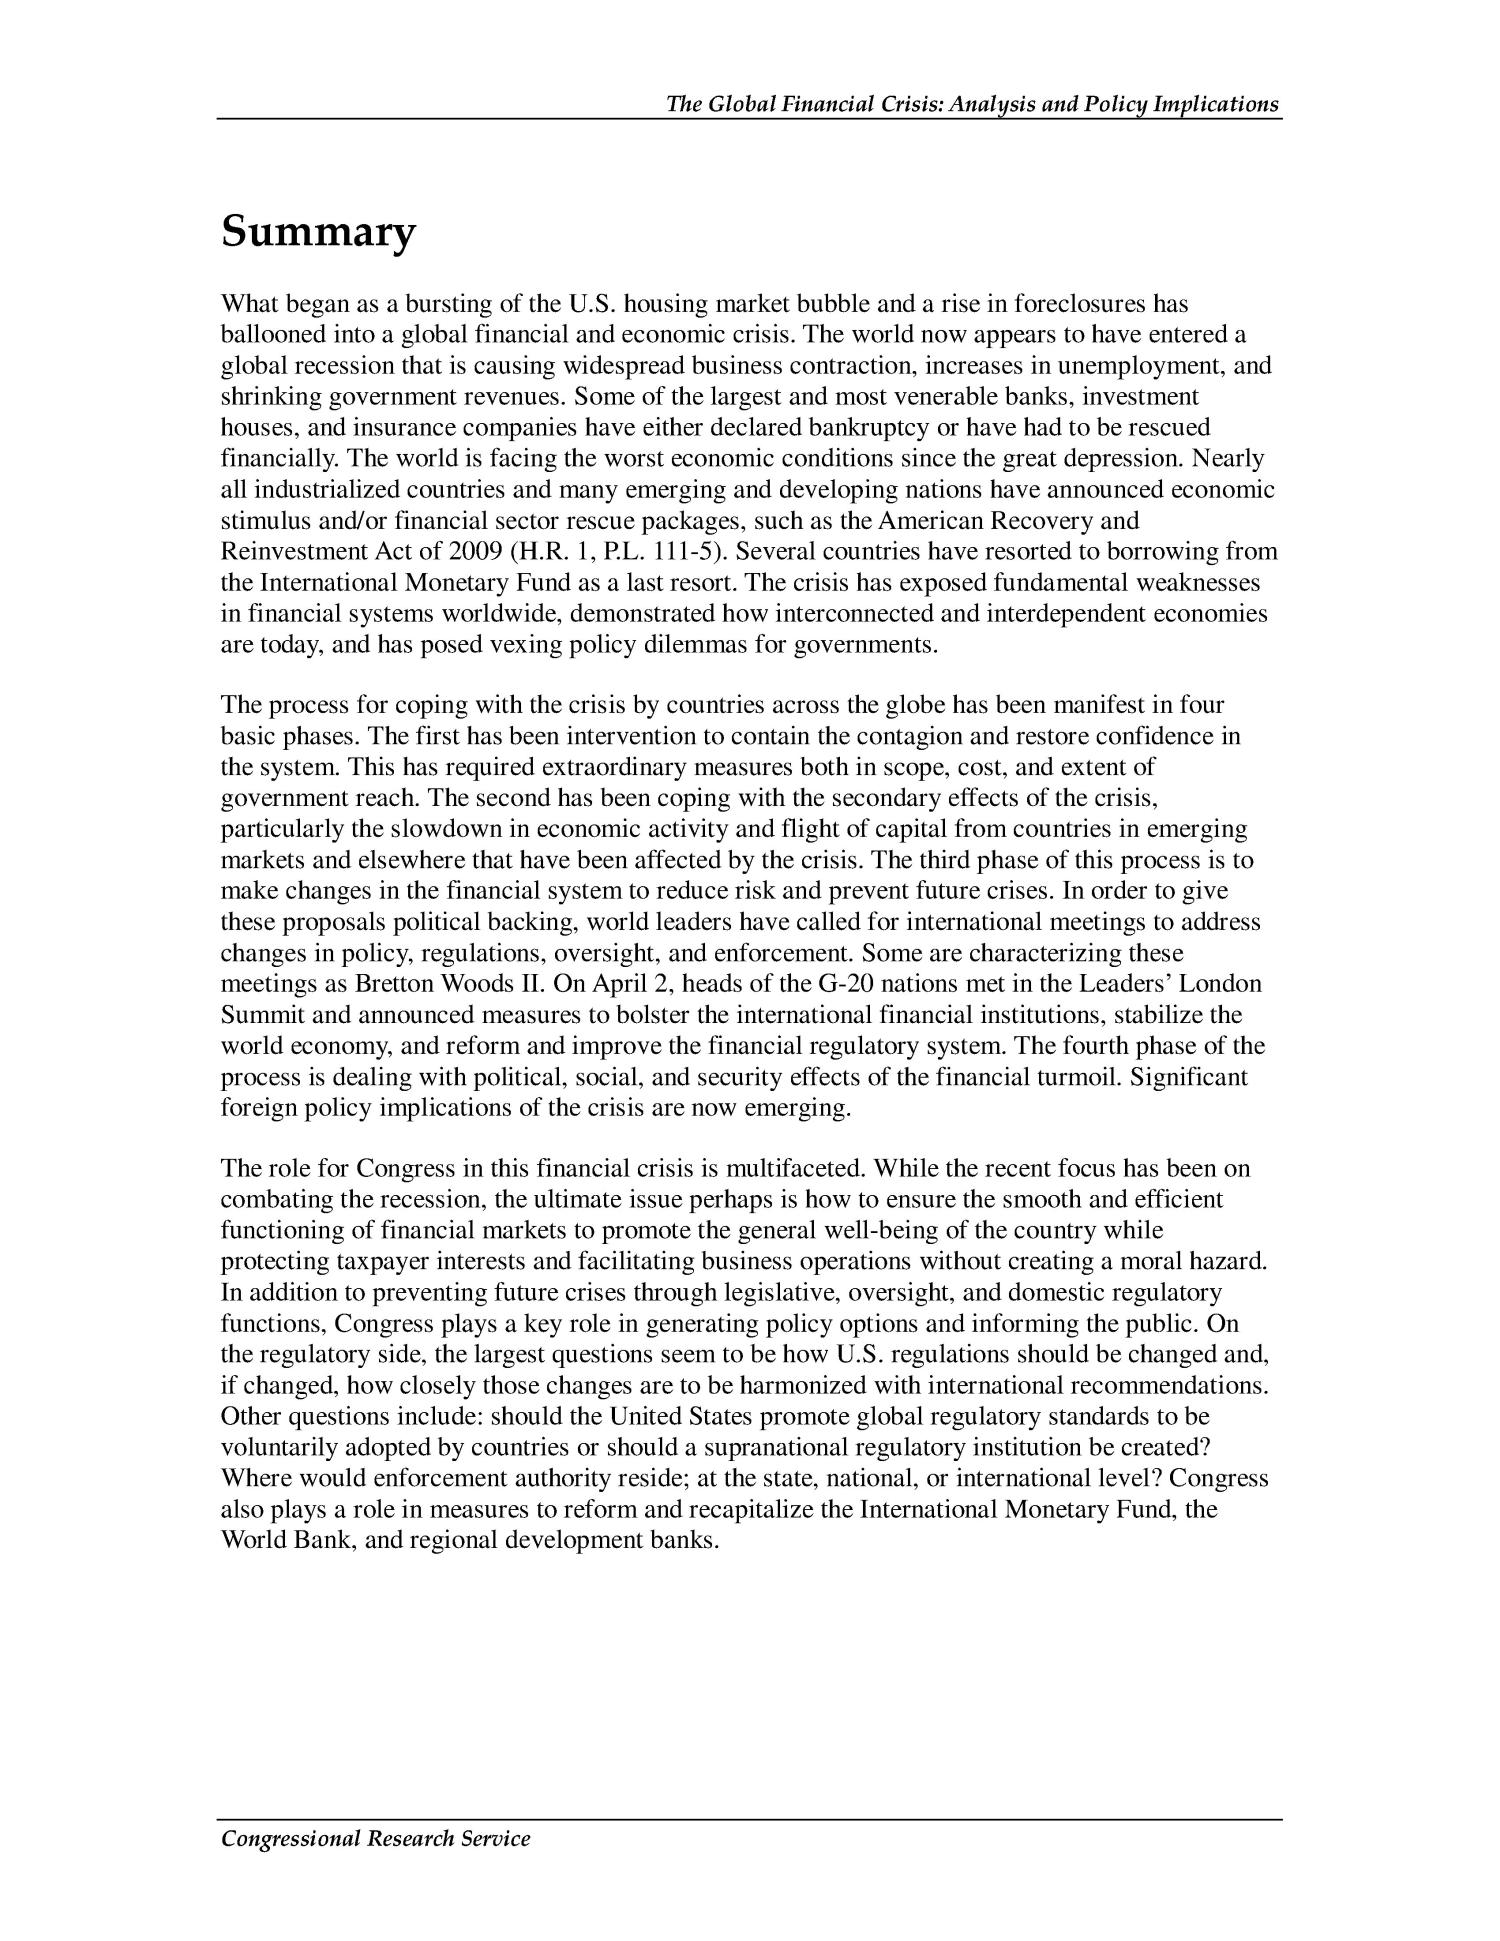 The Global Financial Crisis: Analysis and Policy Implications                                                                                                      [Sequence #]: 2 of 116